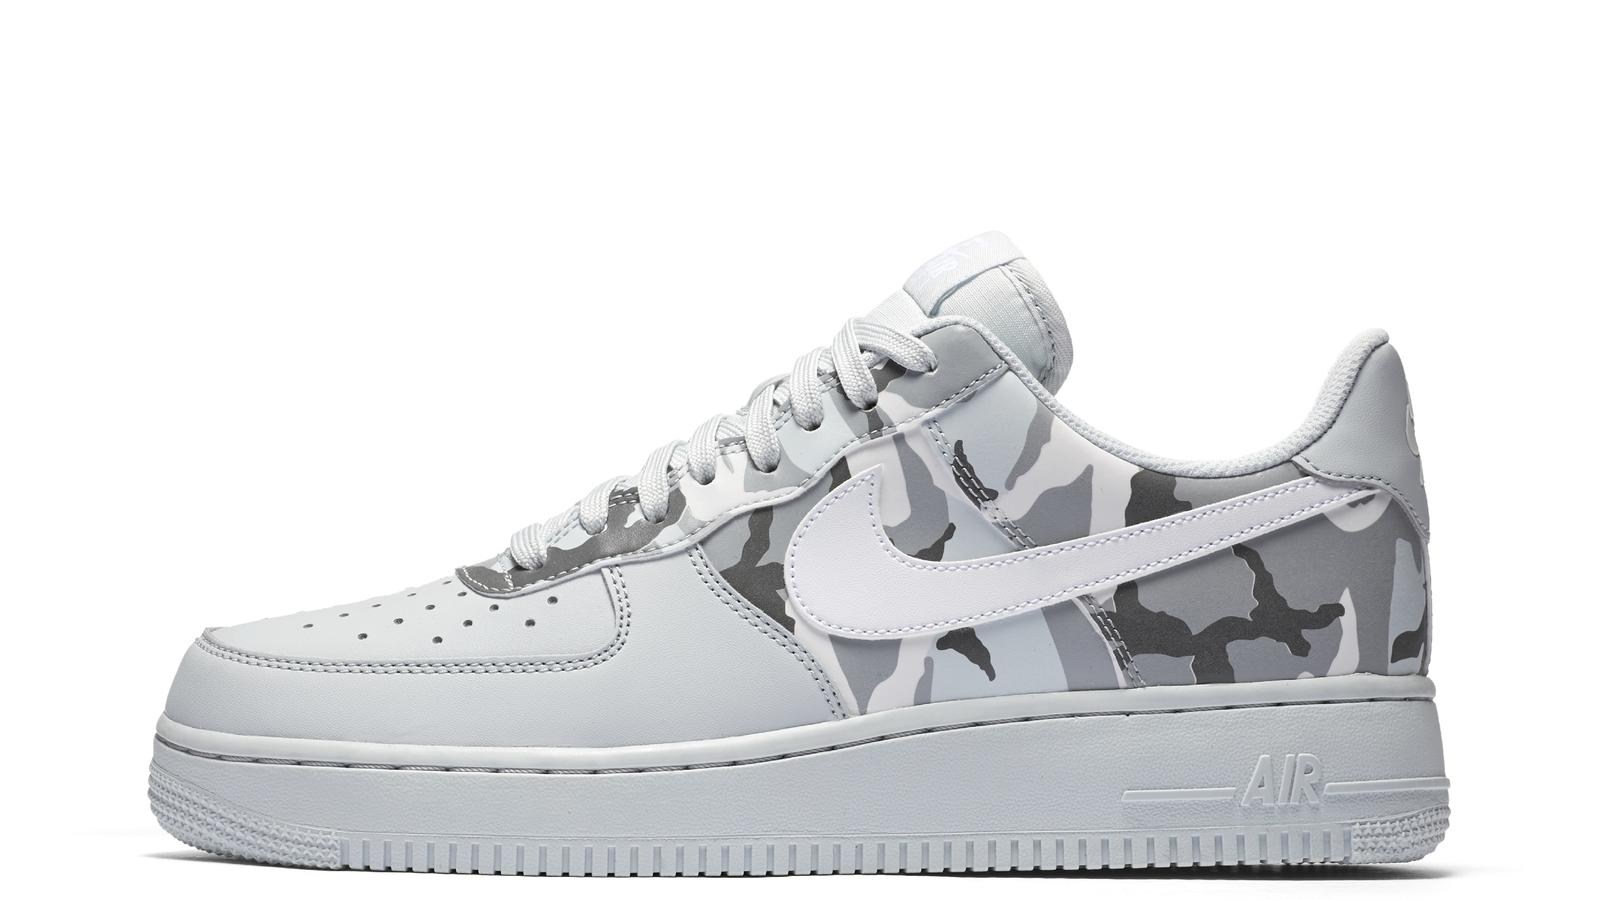 quality design c201b 11509 How Nike and Foot Locker are Taking Sneaker Shopping Experiences to New  Levels 3. Air Force 1 Low Camo